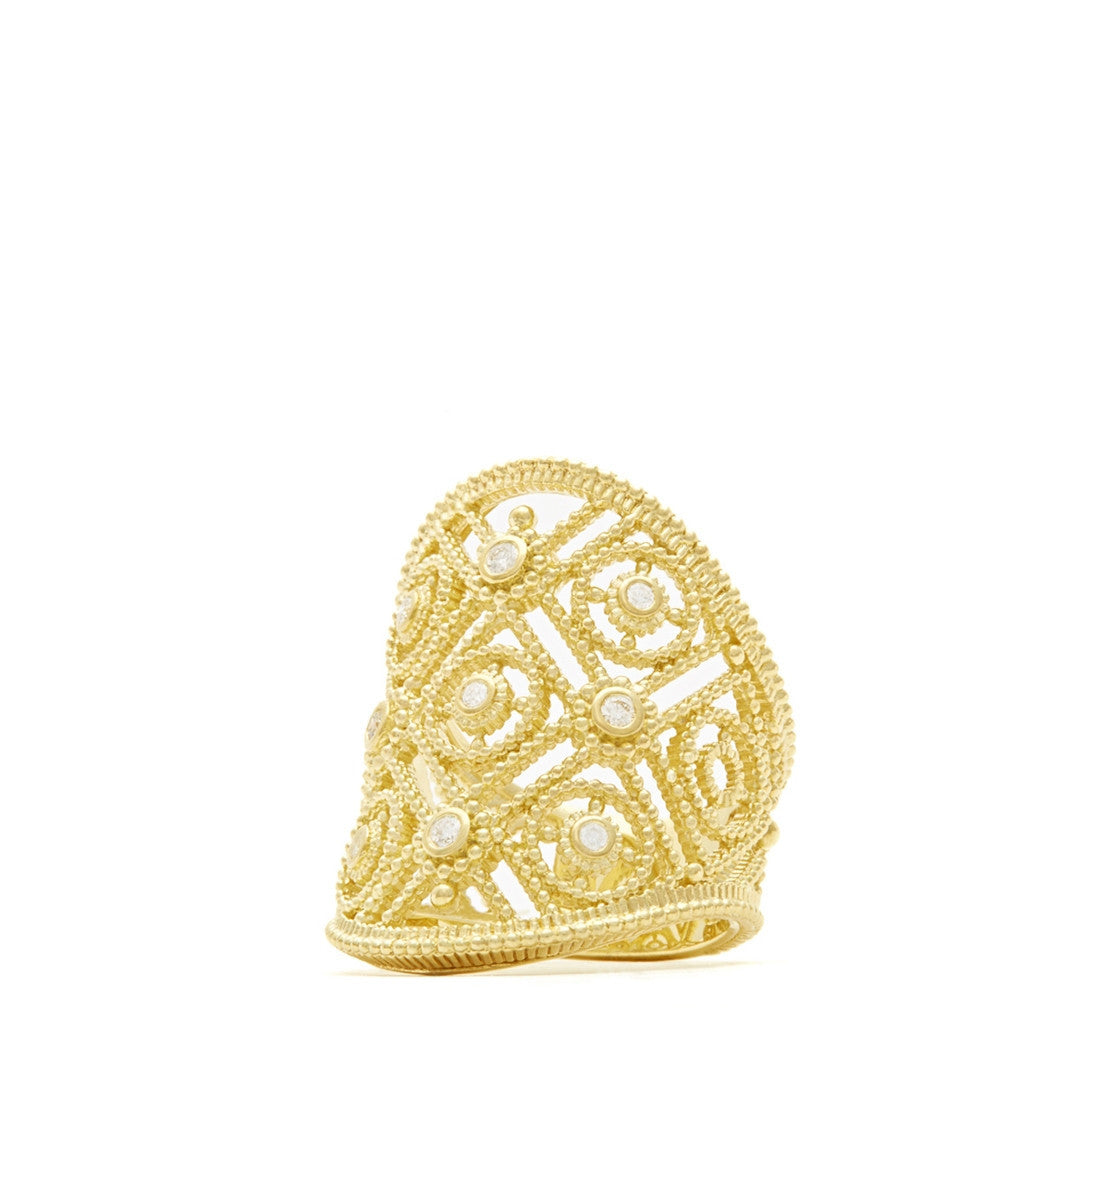 Gabrielle Diamond Saddle Ring, , Ring, Judith Ripka, D'Amore Jewelers  - 1